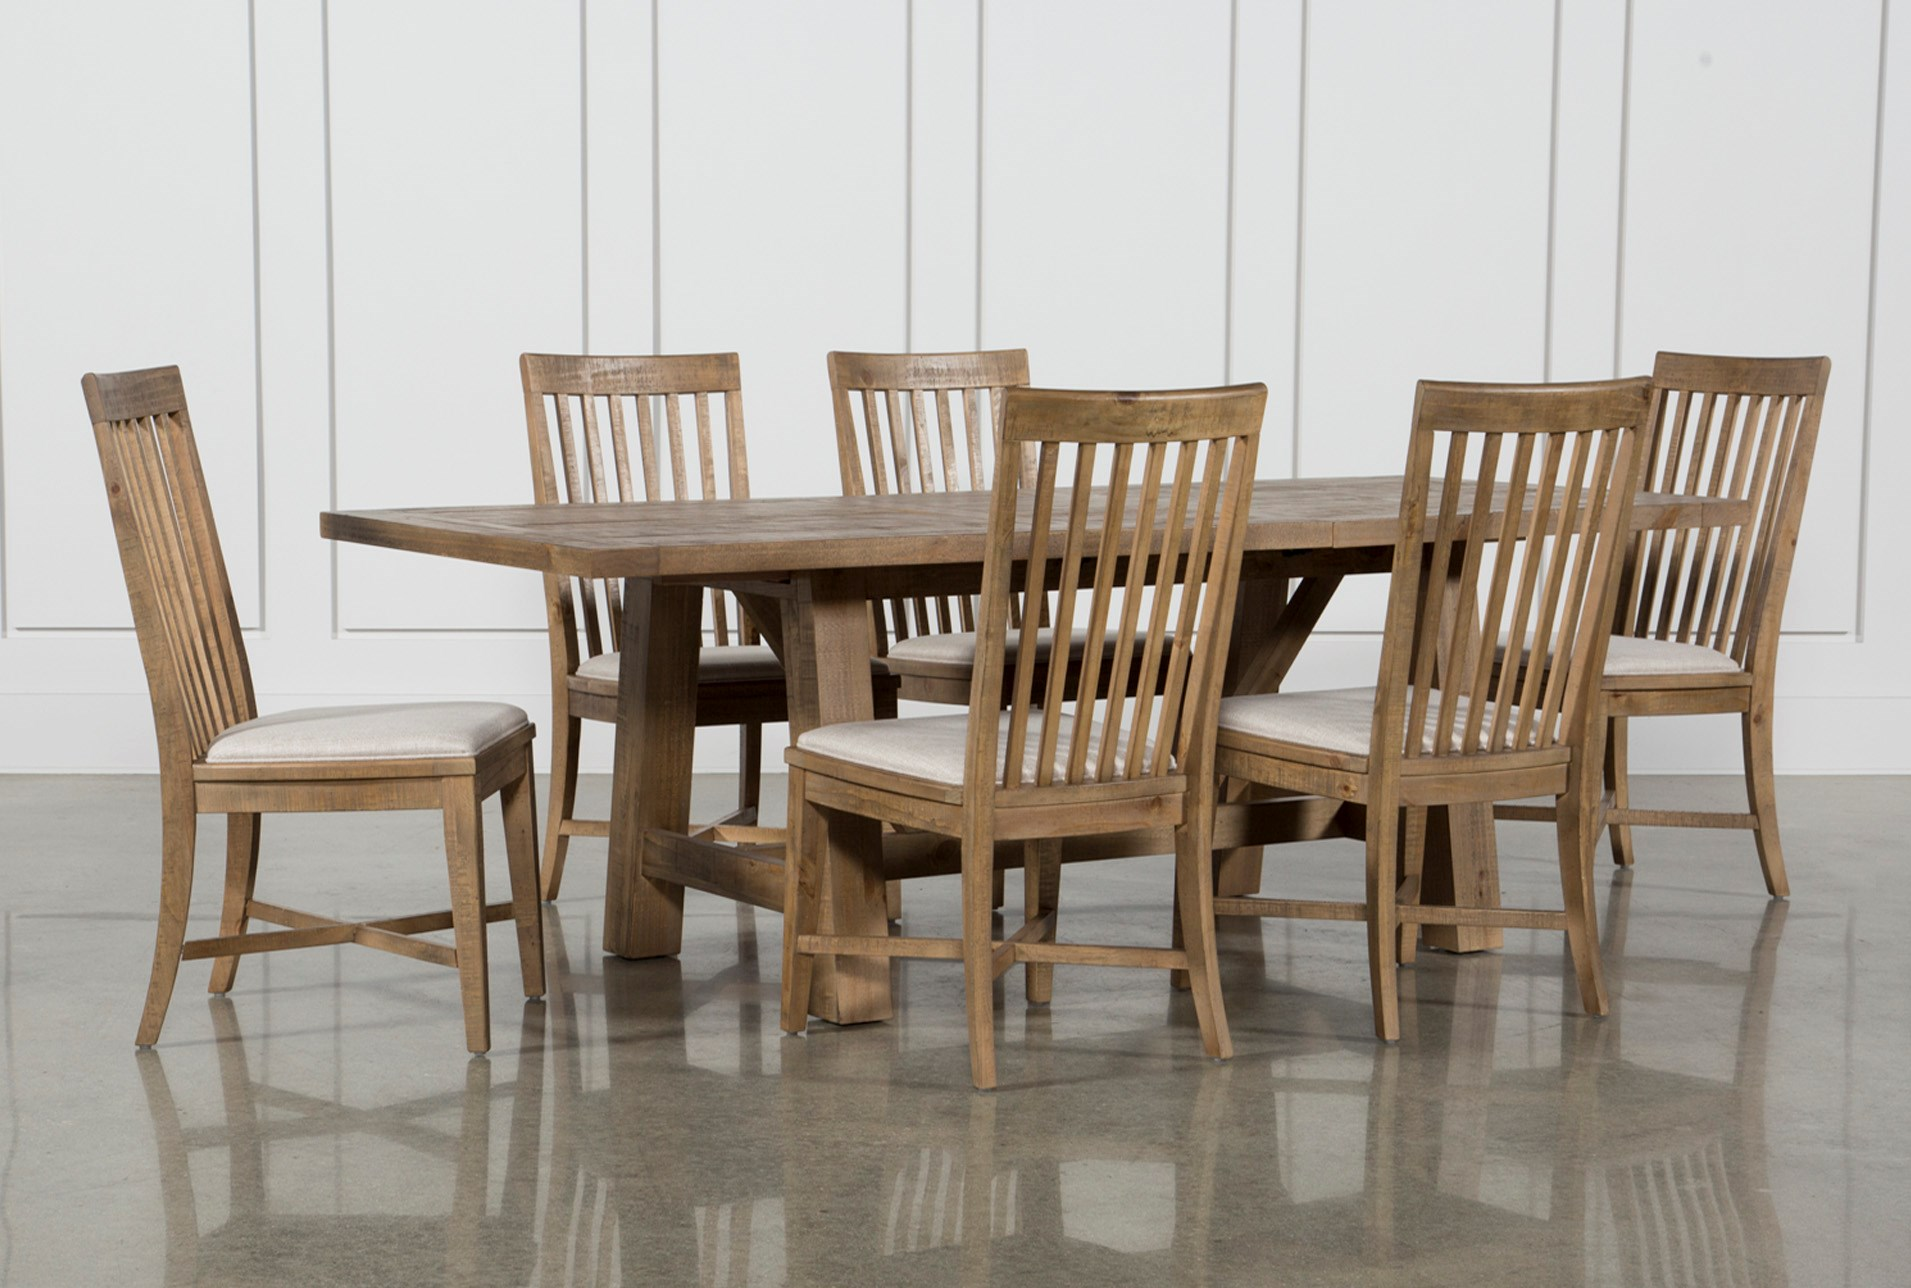 Market 7 Piece Dining Set With Side Chairs Qty 1 Has Been Successfully Added To Your Cart